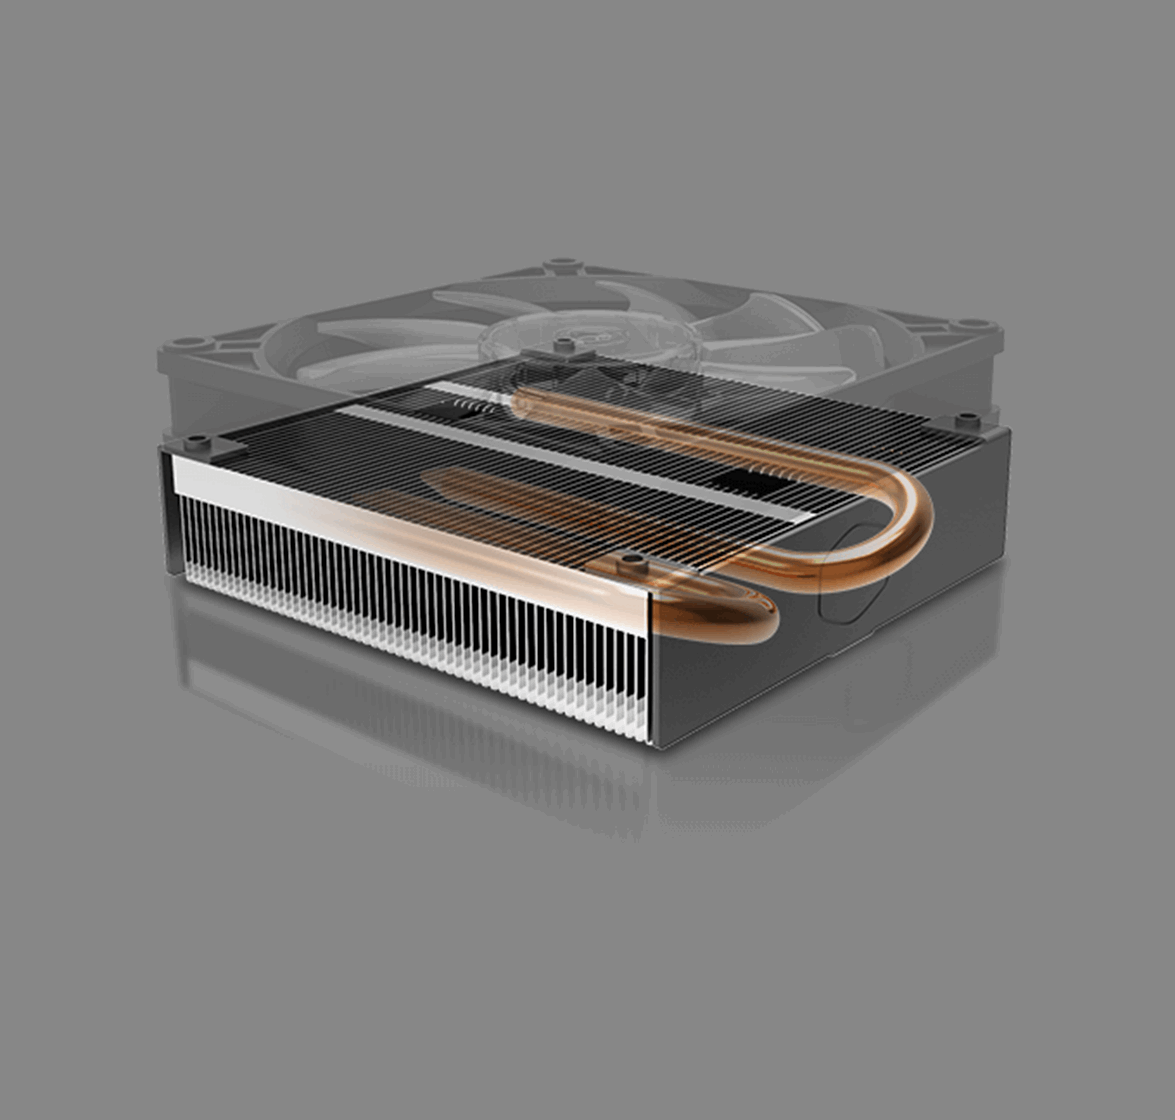 Two C-shaped Heat Pipe Design